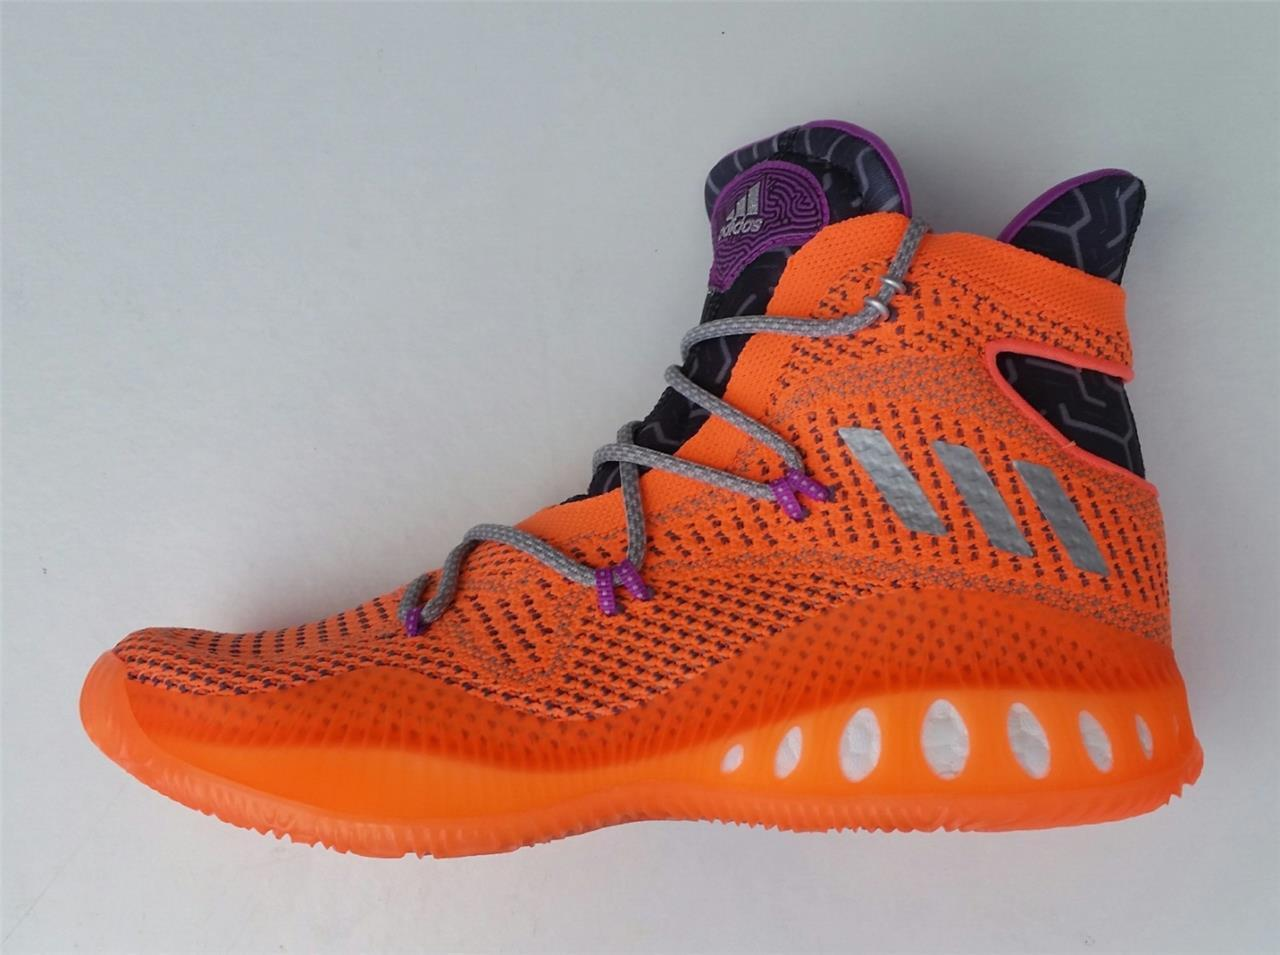 Adidas mens crazy explosive prime knit basketball Stiefel new bb8370 uk 6.5 to 15